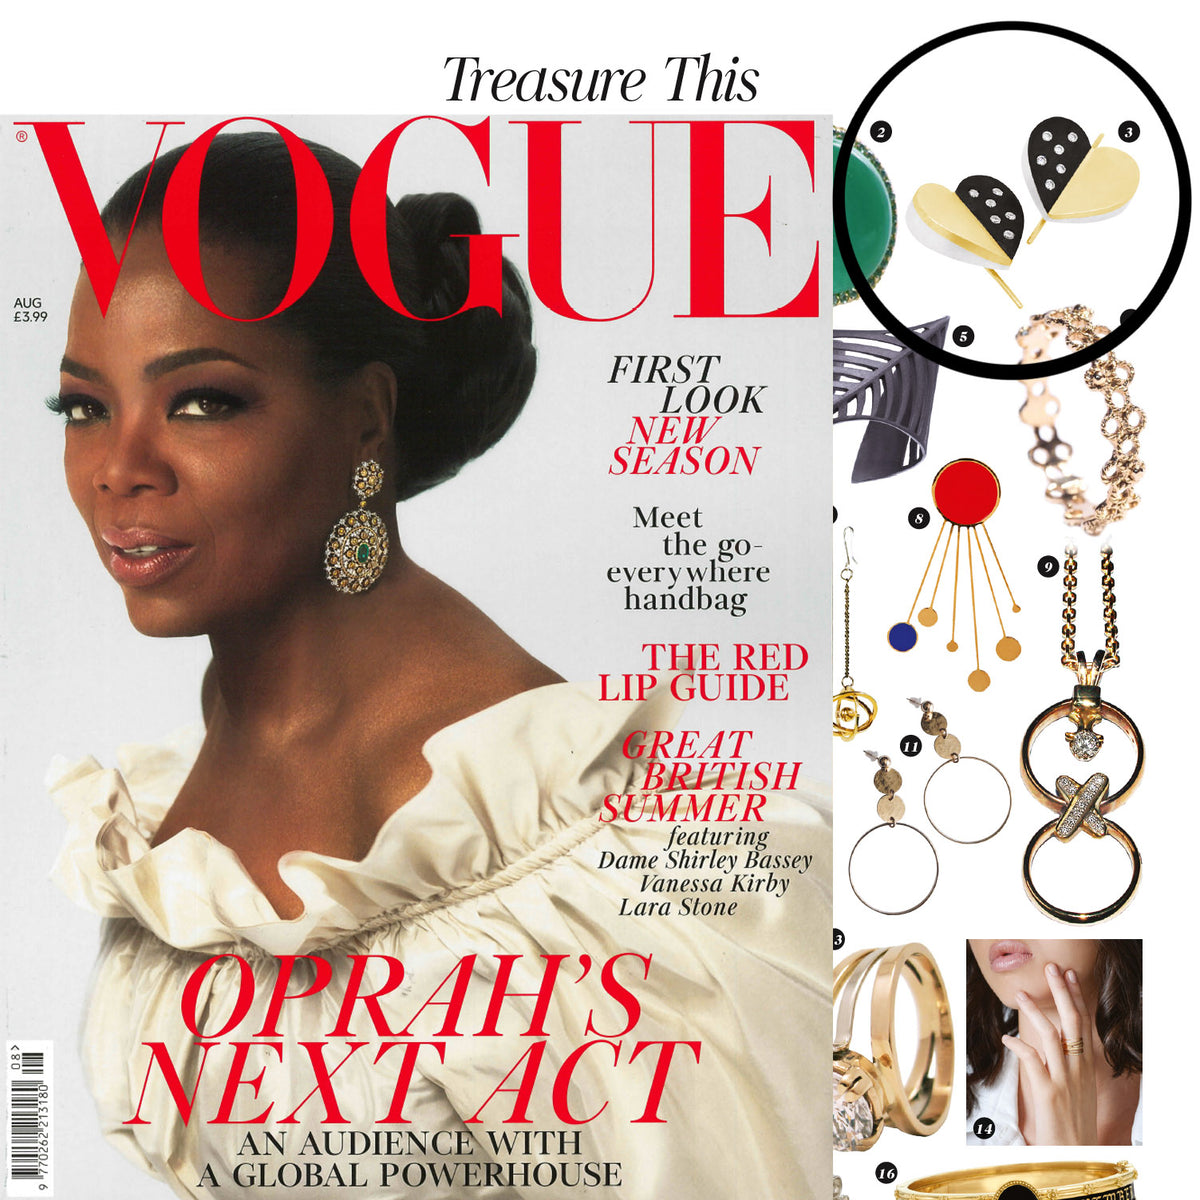 Diamond Sanguine Luxe Heart Drop Earrings Featured In August Issue Of British Vogue